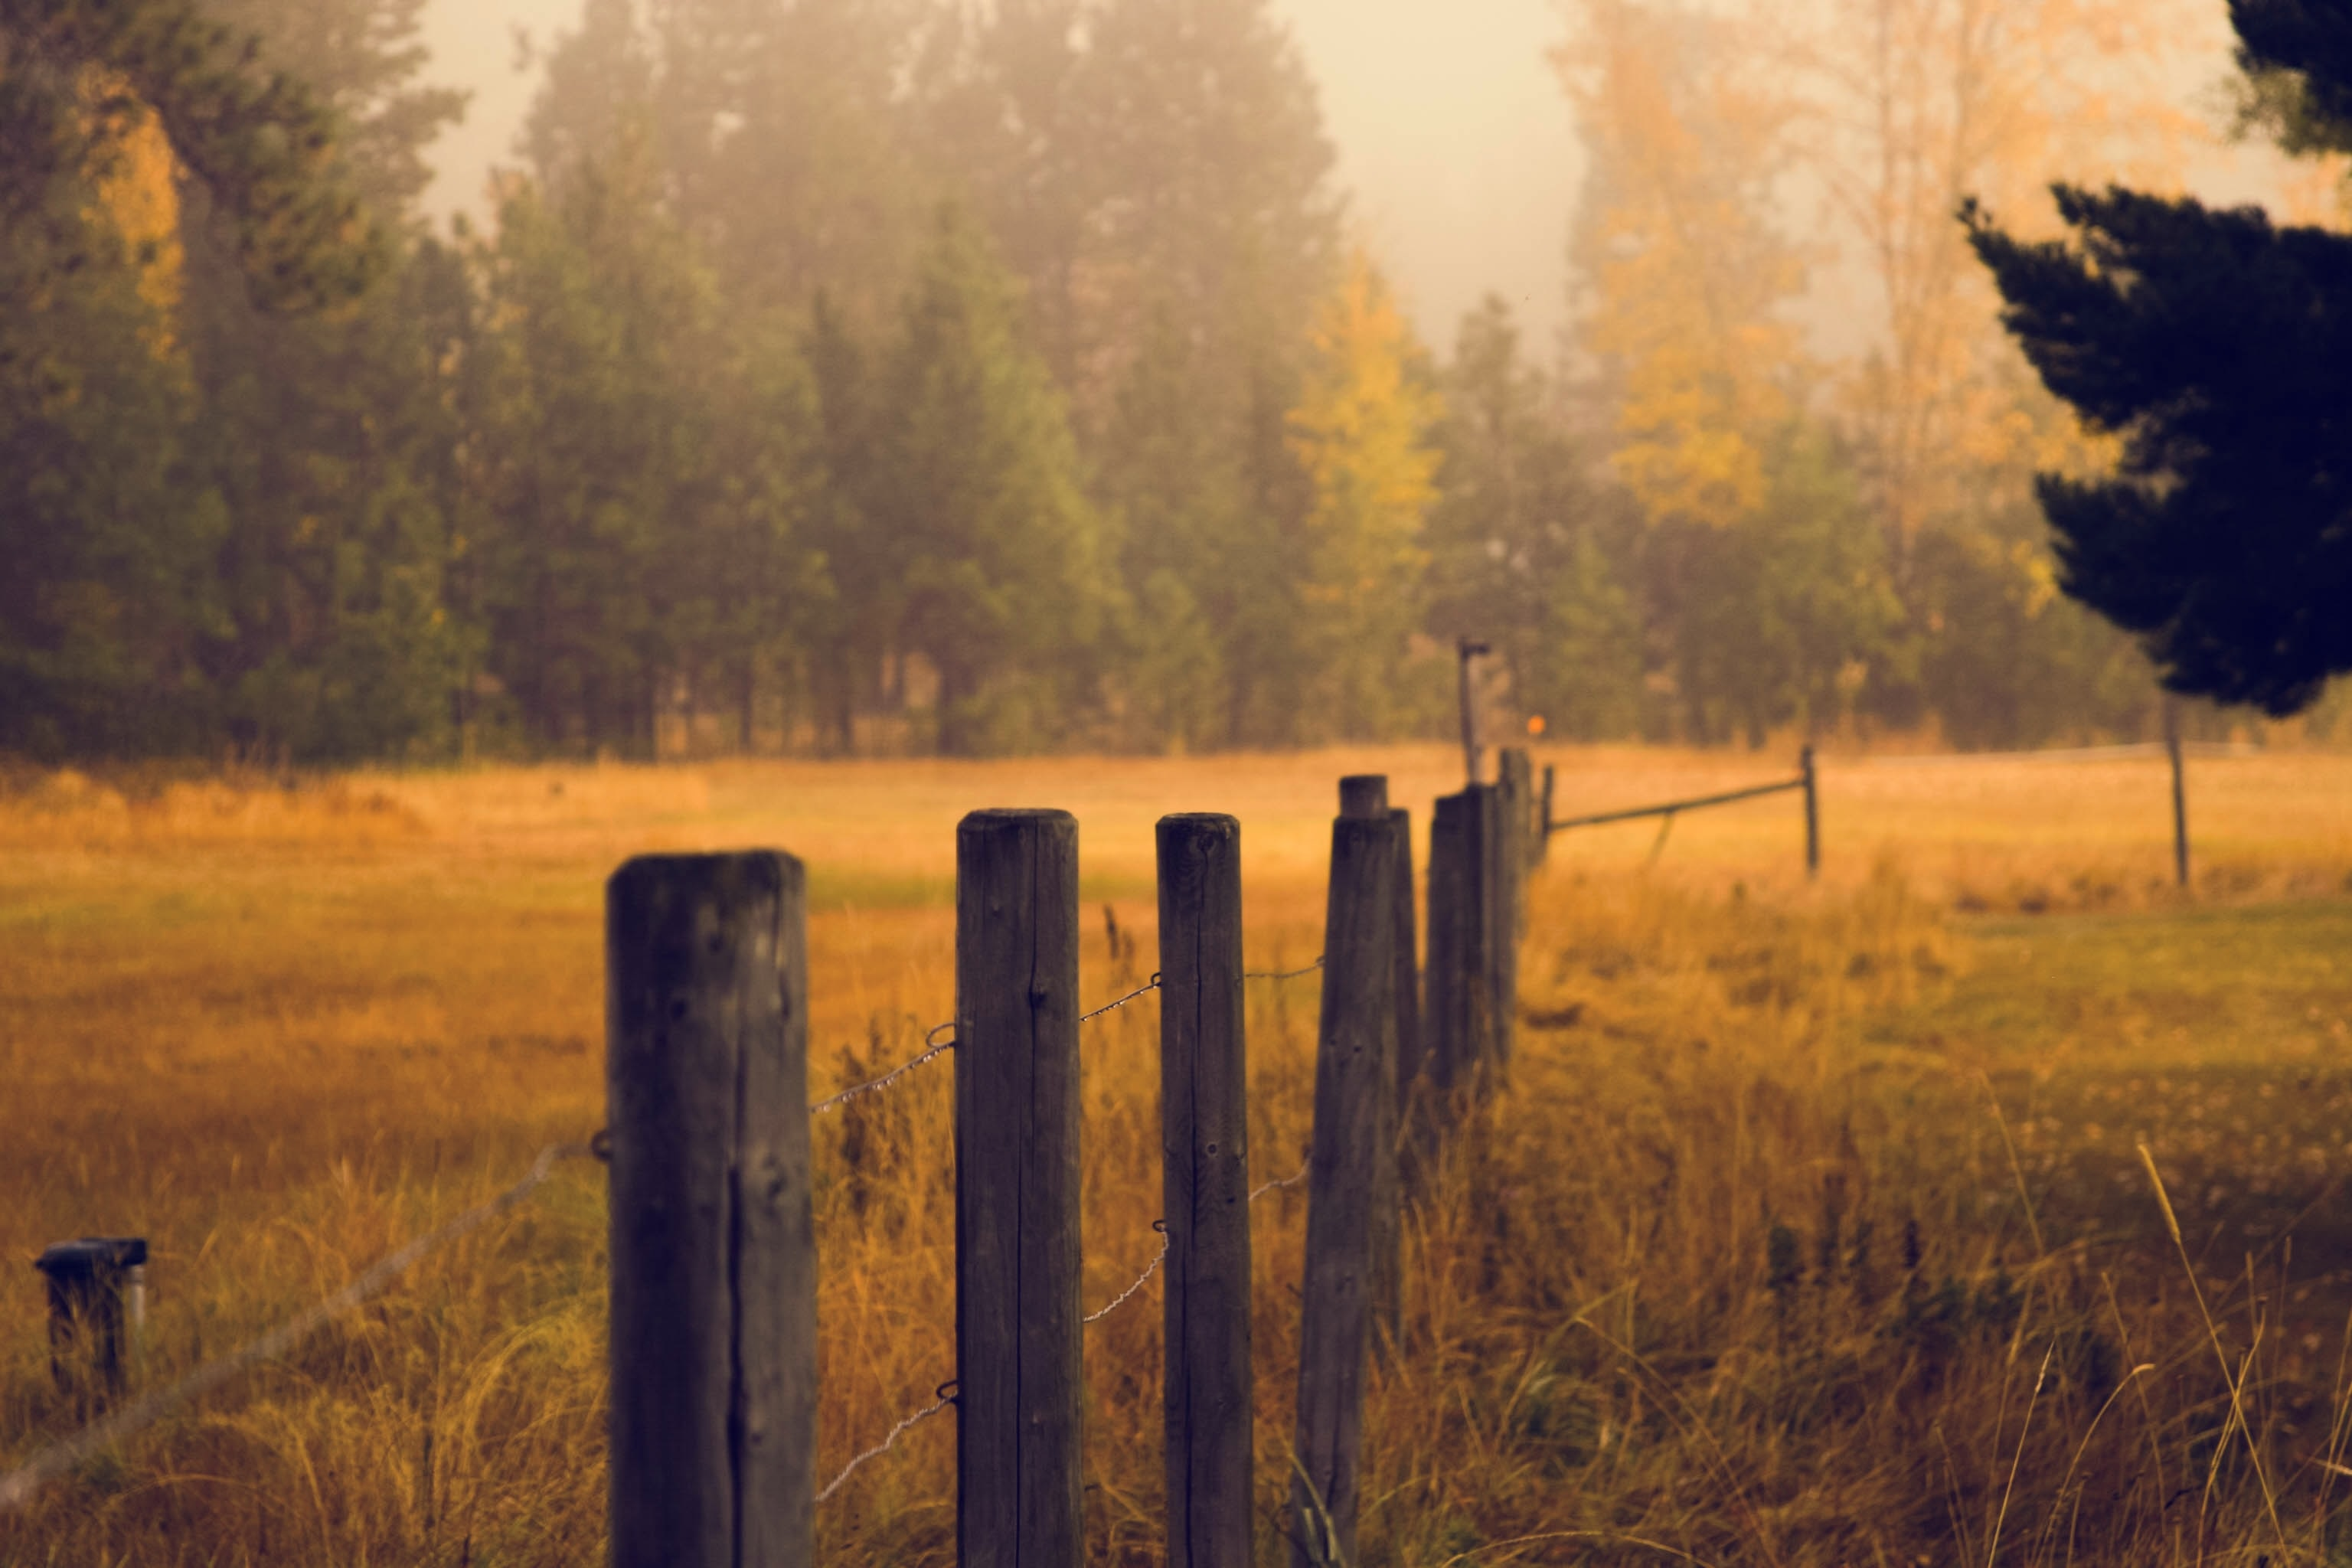 A low wooden fence with a wire in a field